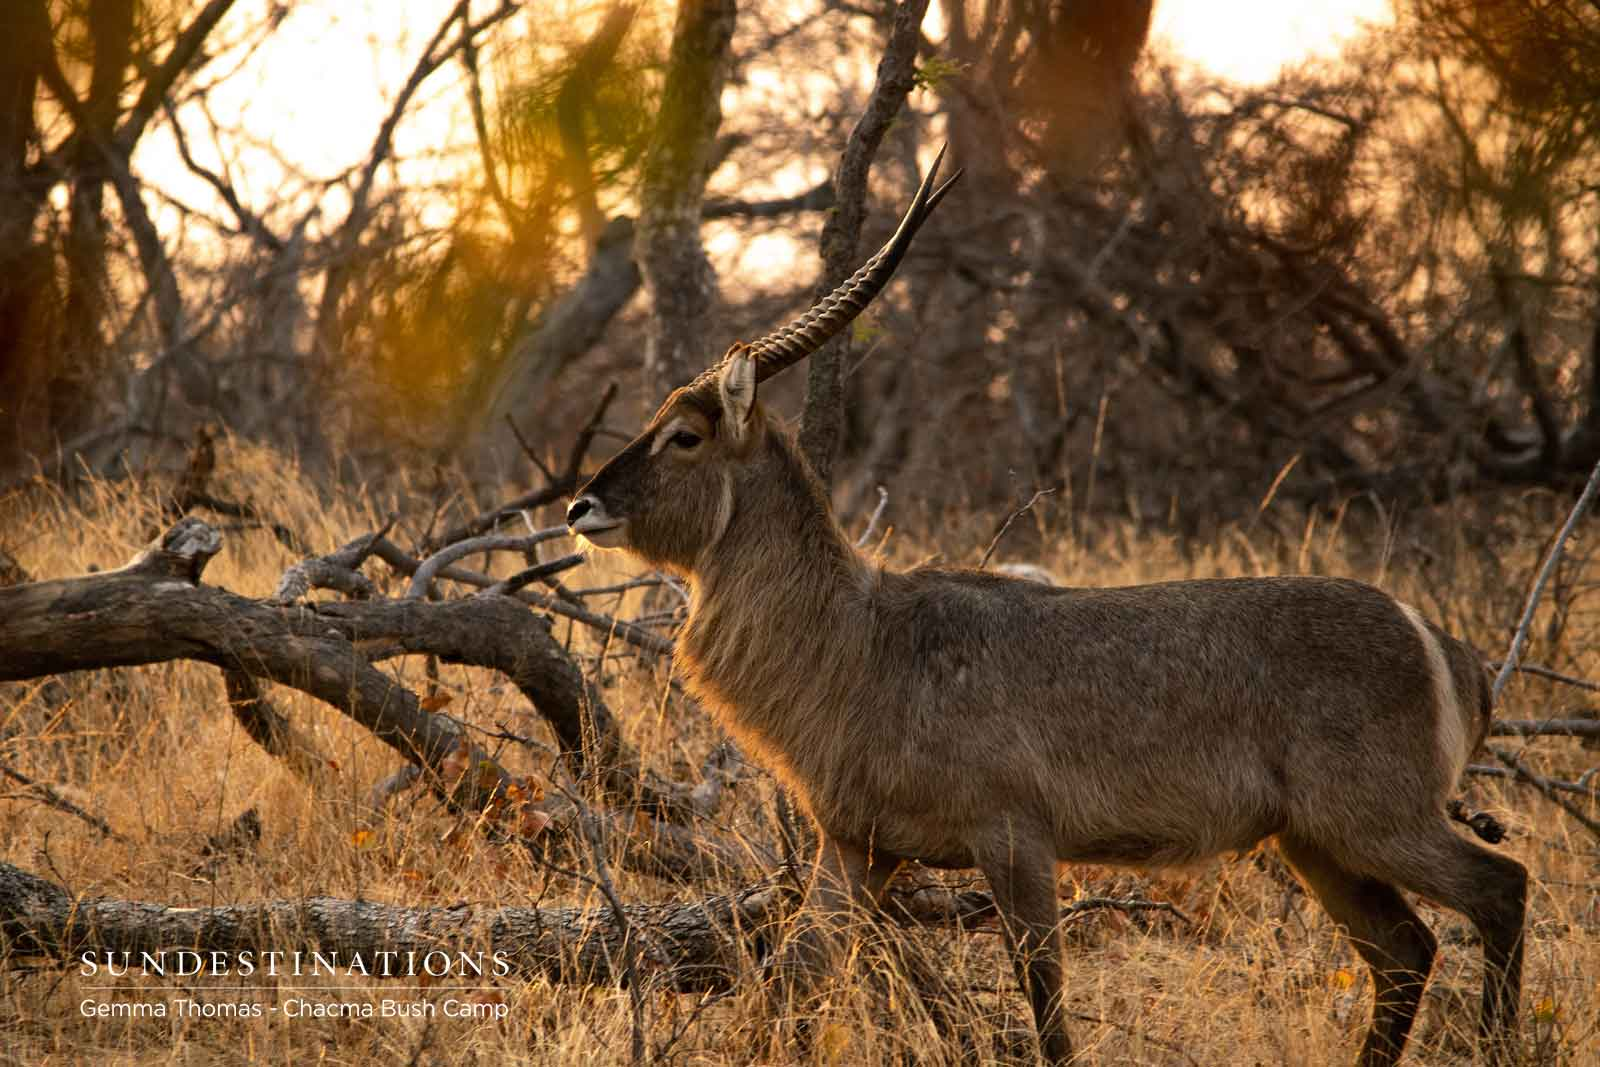 Waterbuck at Chacma